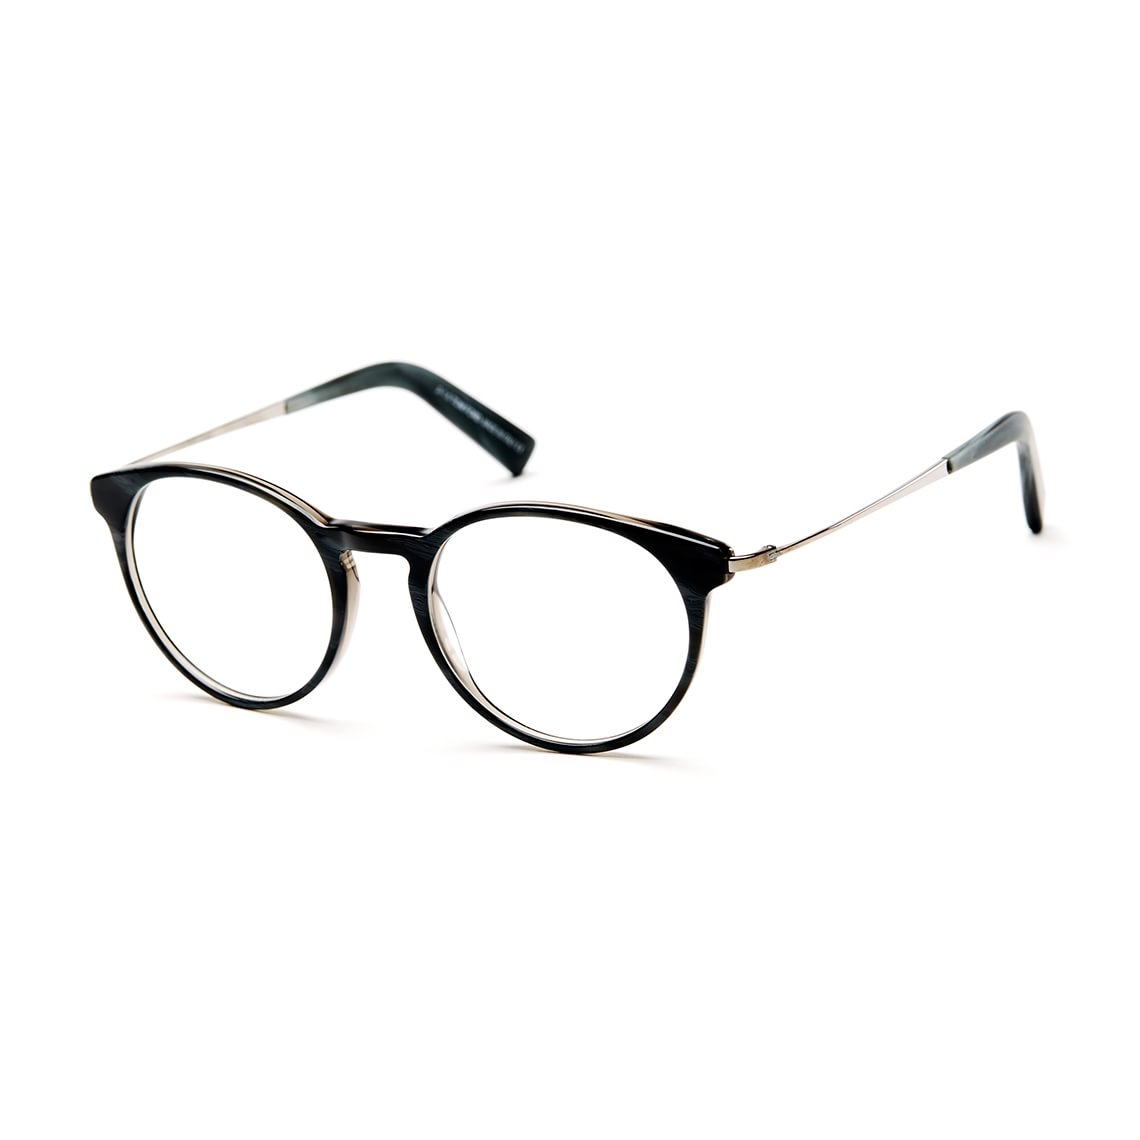 Tom Ford FT5383 020 51